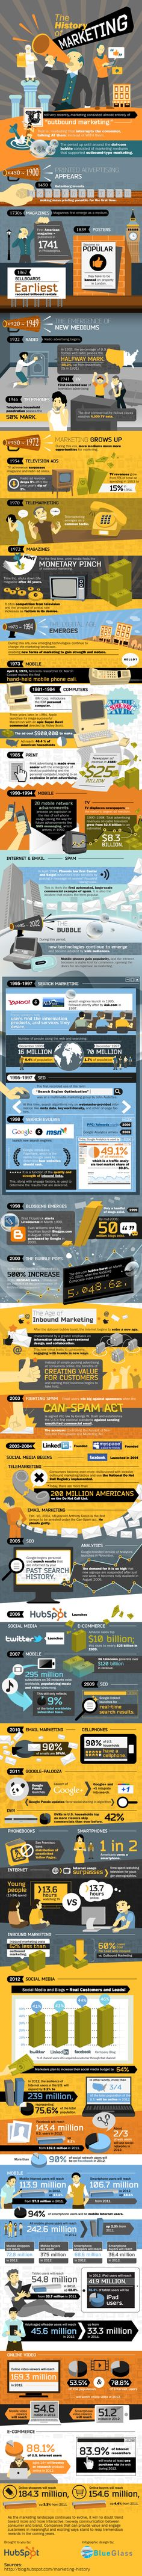 The history of #Marketing